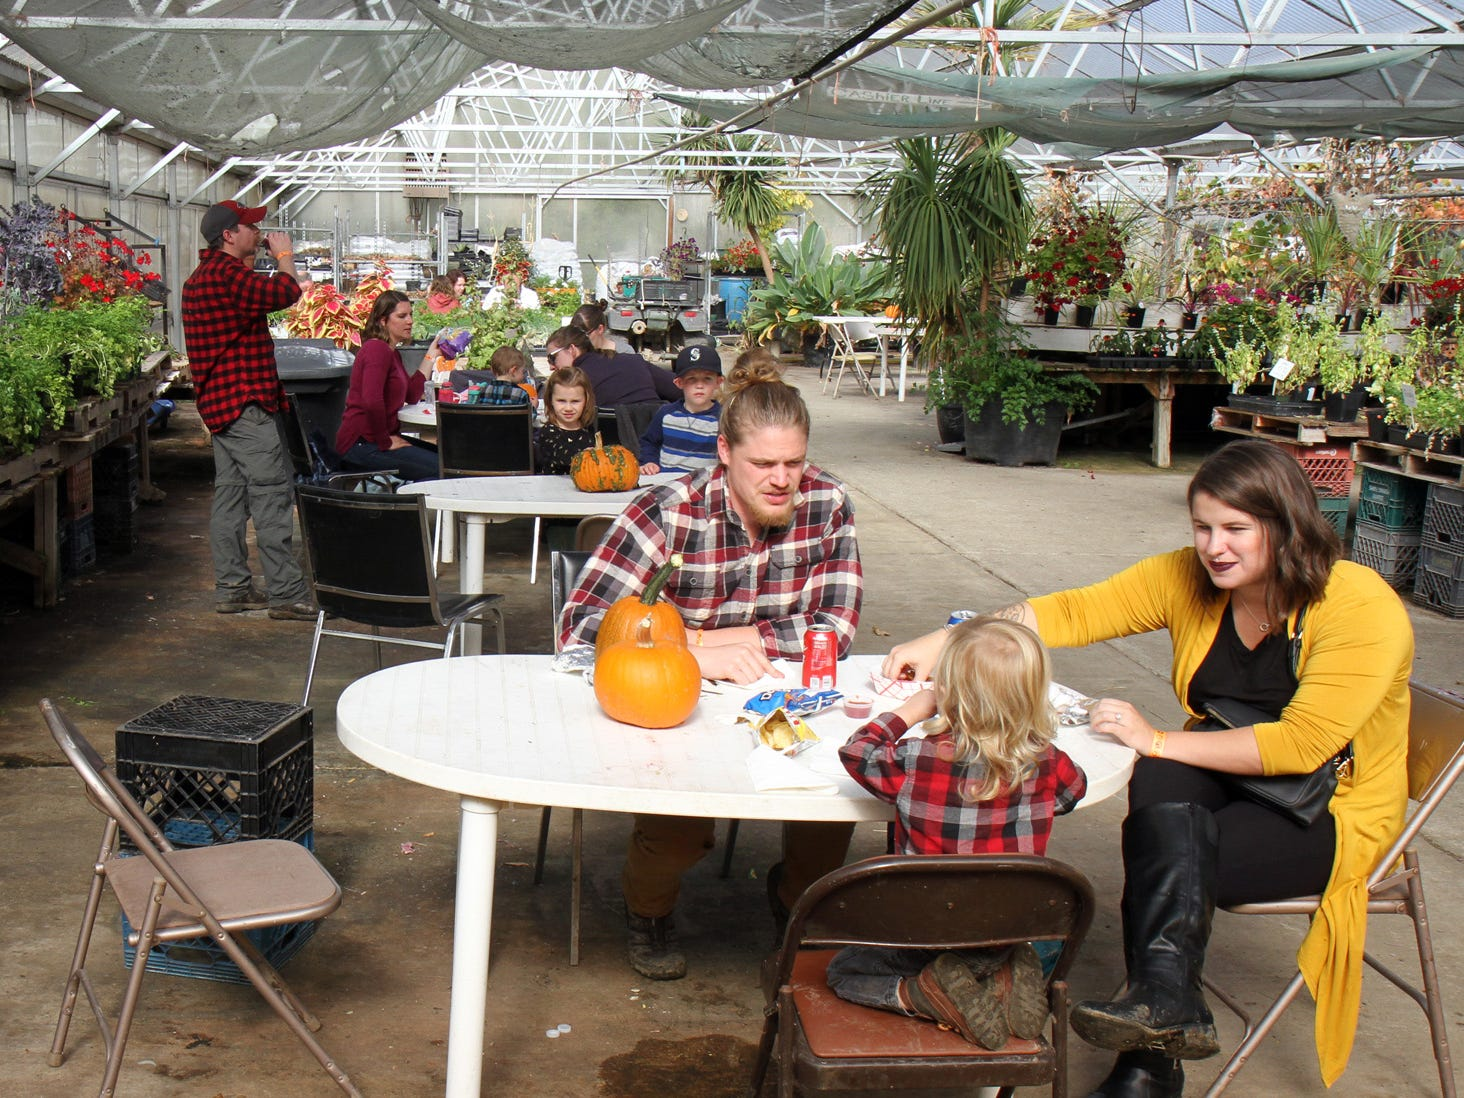 Sam and Derek Mellendorf, of Silverdale, enjoy a snack with their son Chase in the Hunter Farms green house.